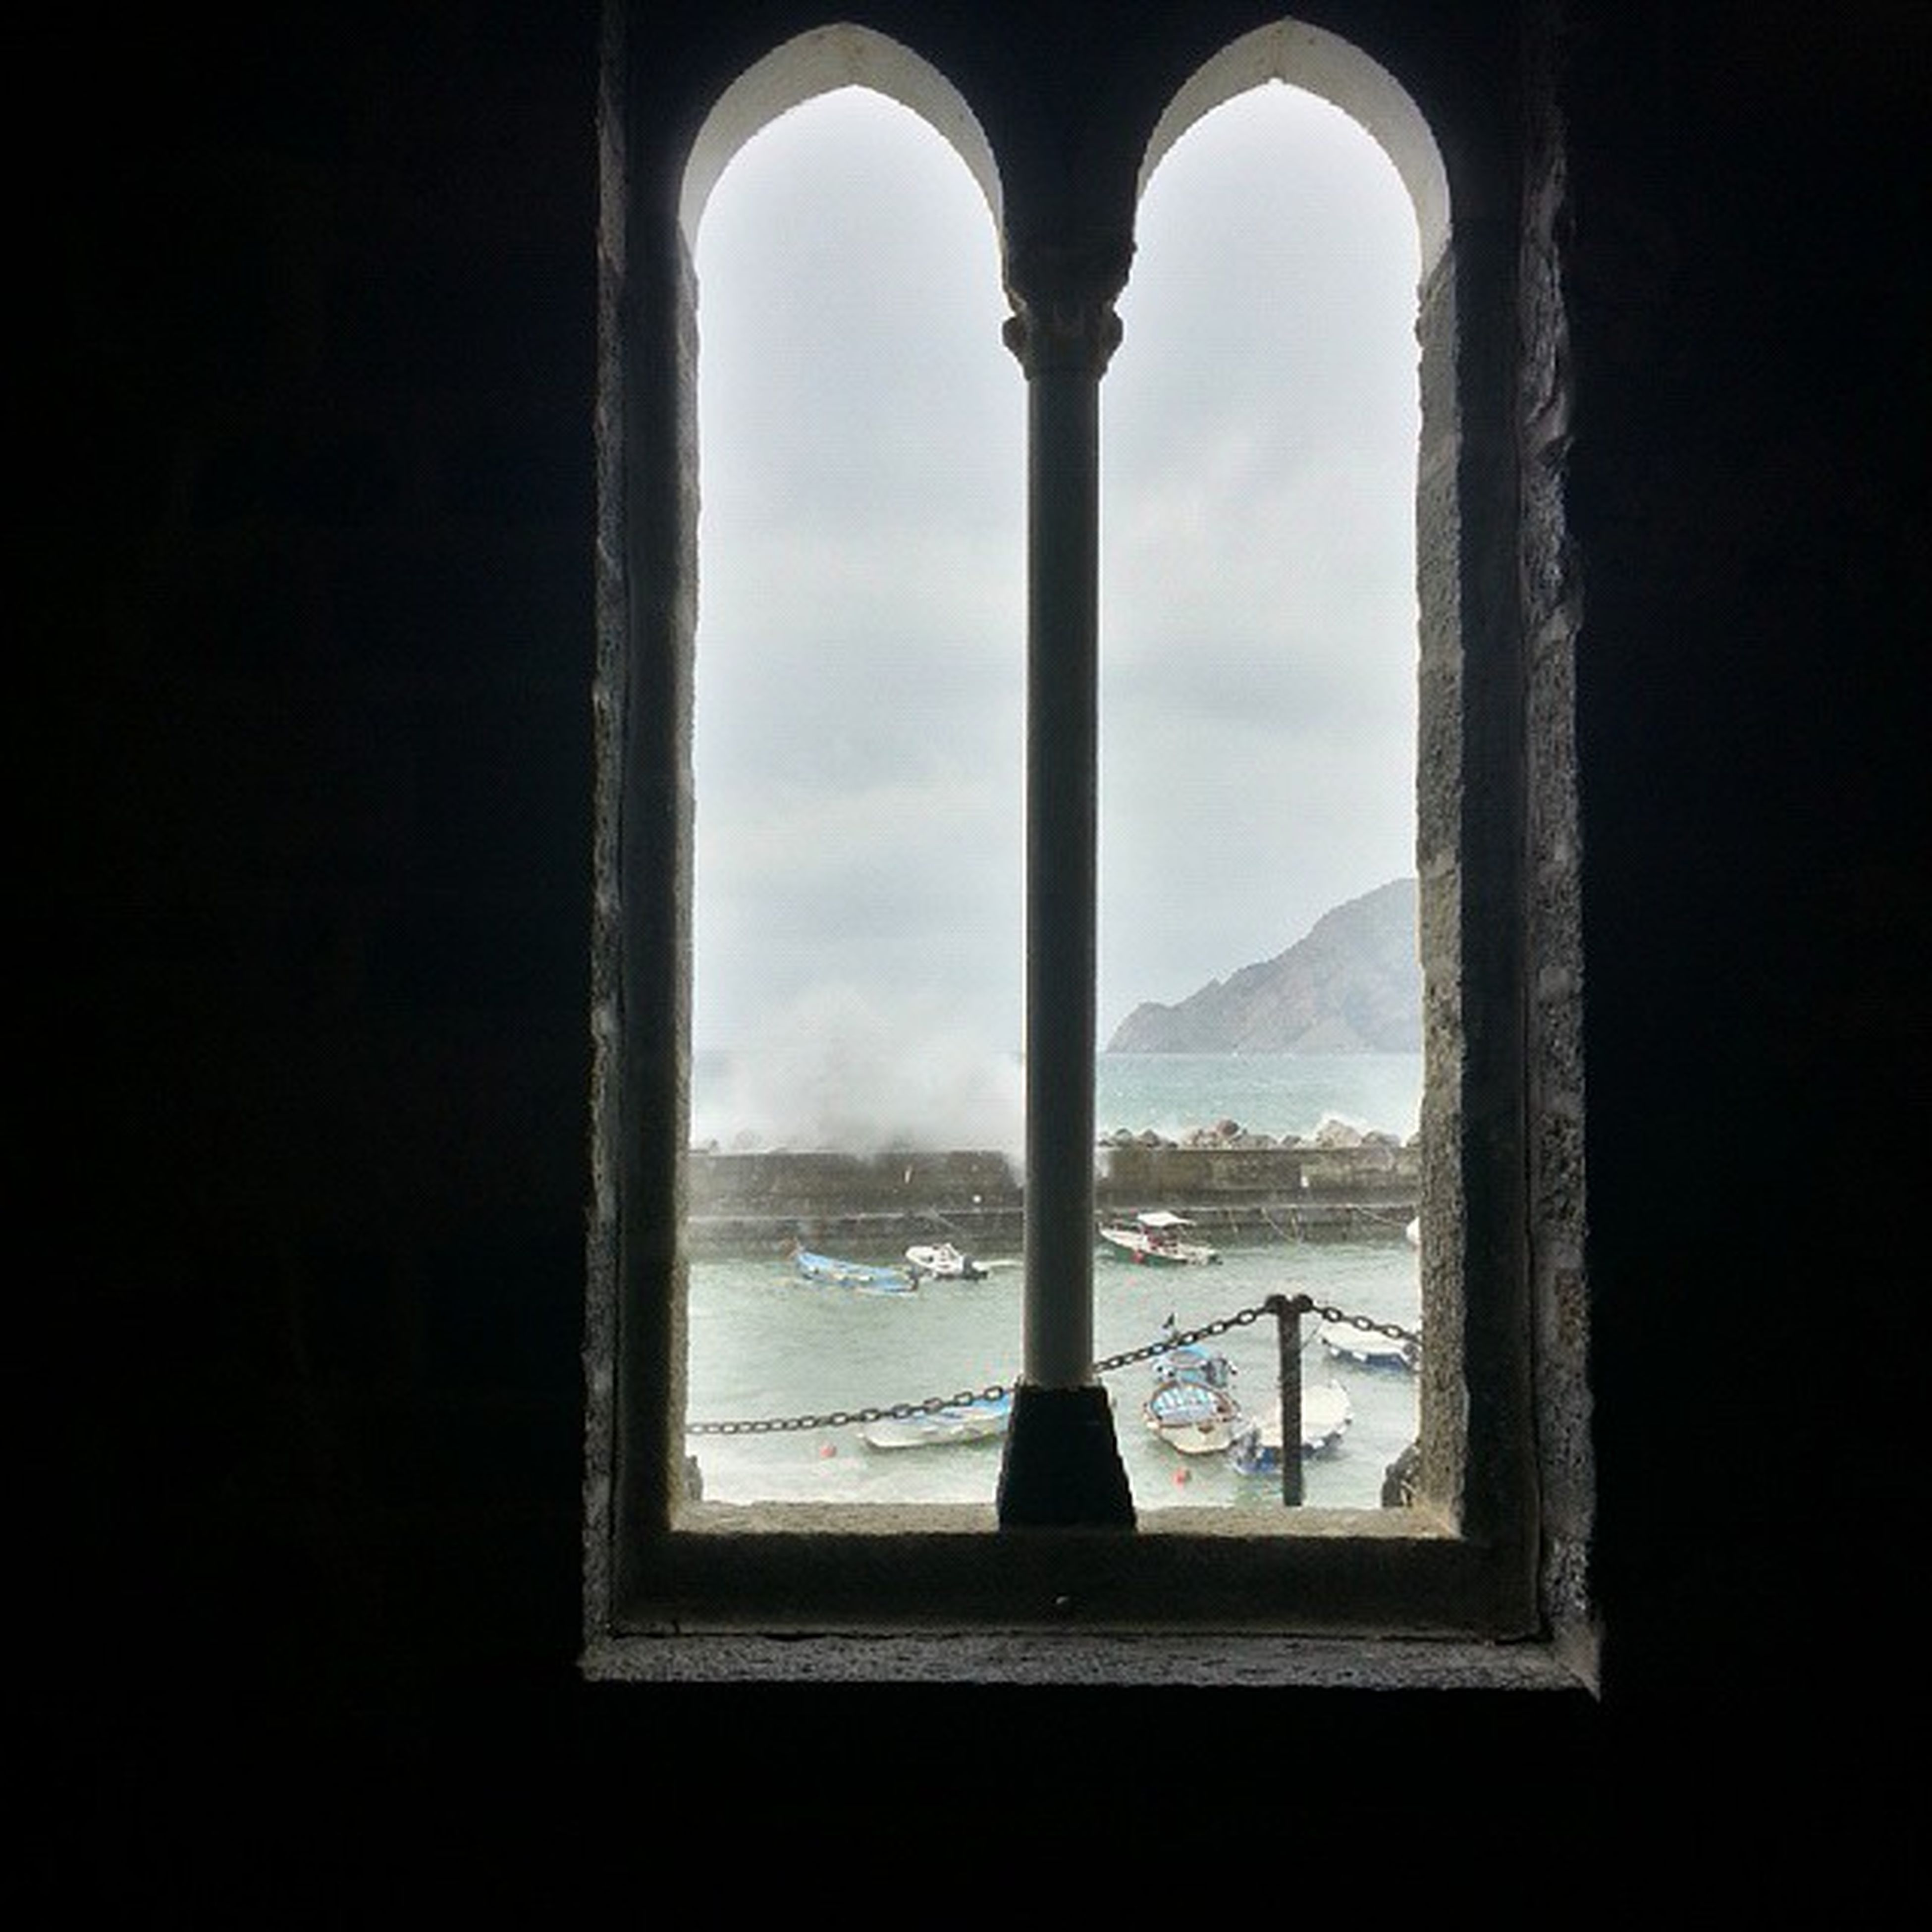 indoors, window, water, sky, built structure, architecture, mountain, glass - material, transparent, looking through window, day, arch, nature, tranquility, silhouette, sea, no people, reflection, lake, scenics